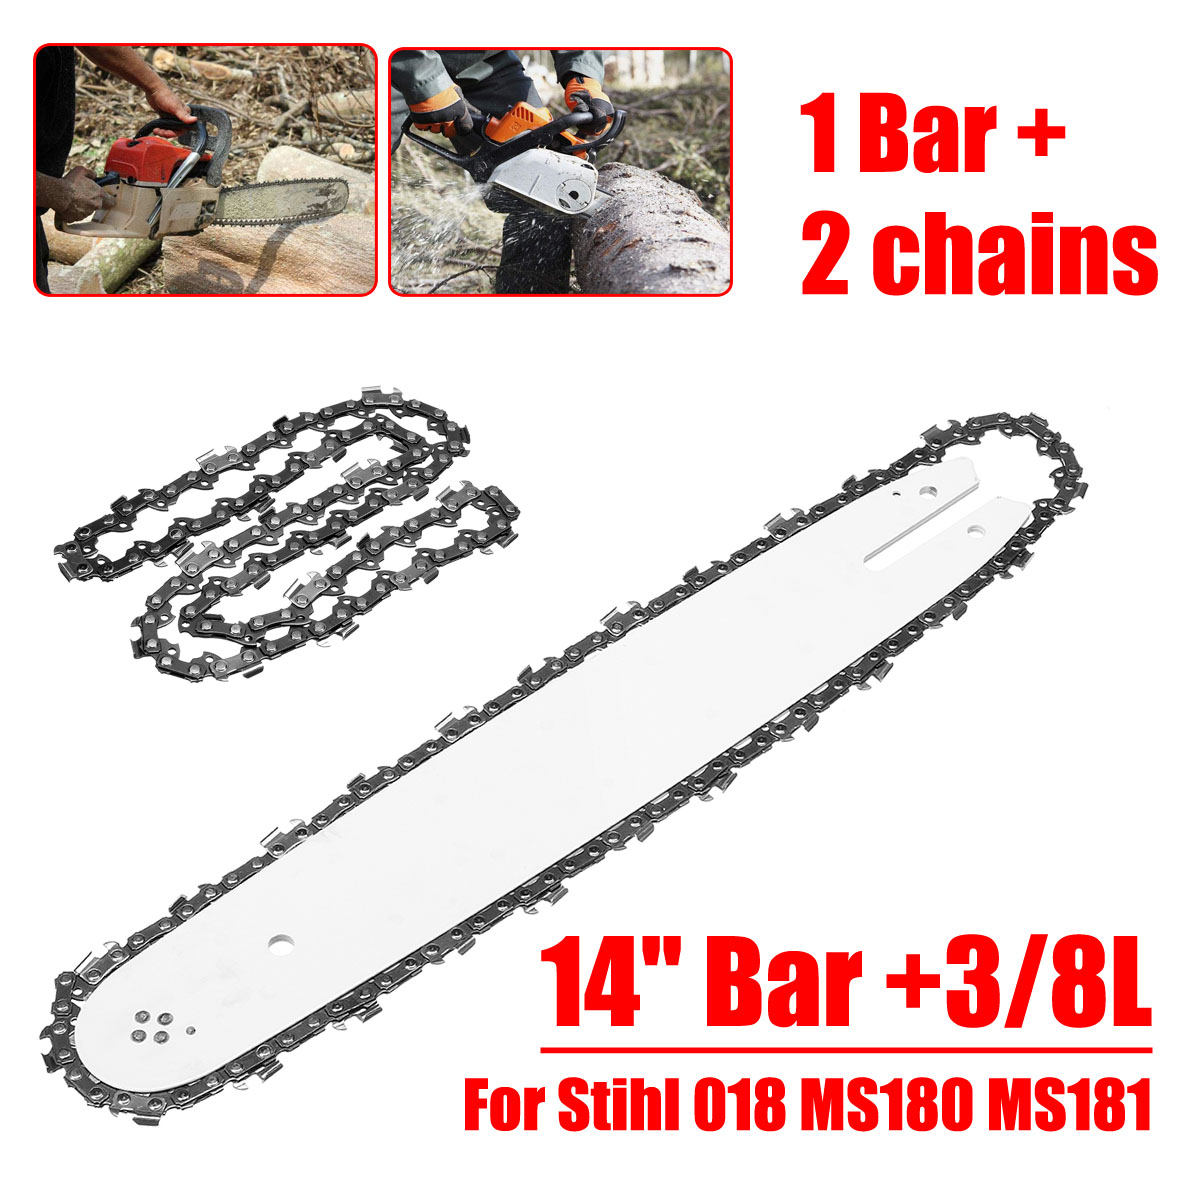 """Doersupp 14"""" Bar +3/8L 2pcs Chains Fit For Stihl 018 MS180 MS181 Chainsaws Chain Saw"""